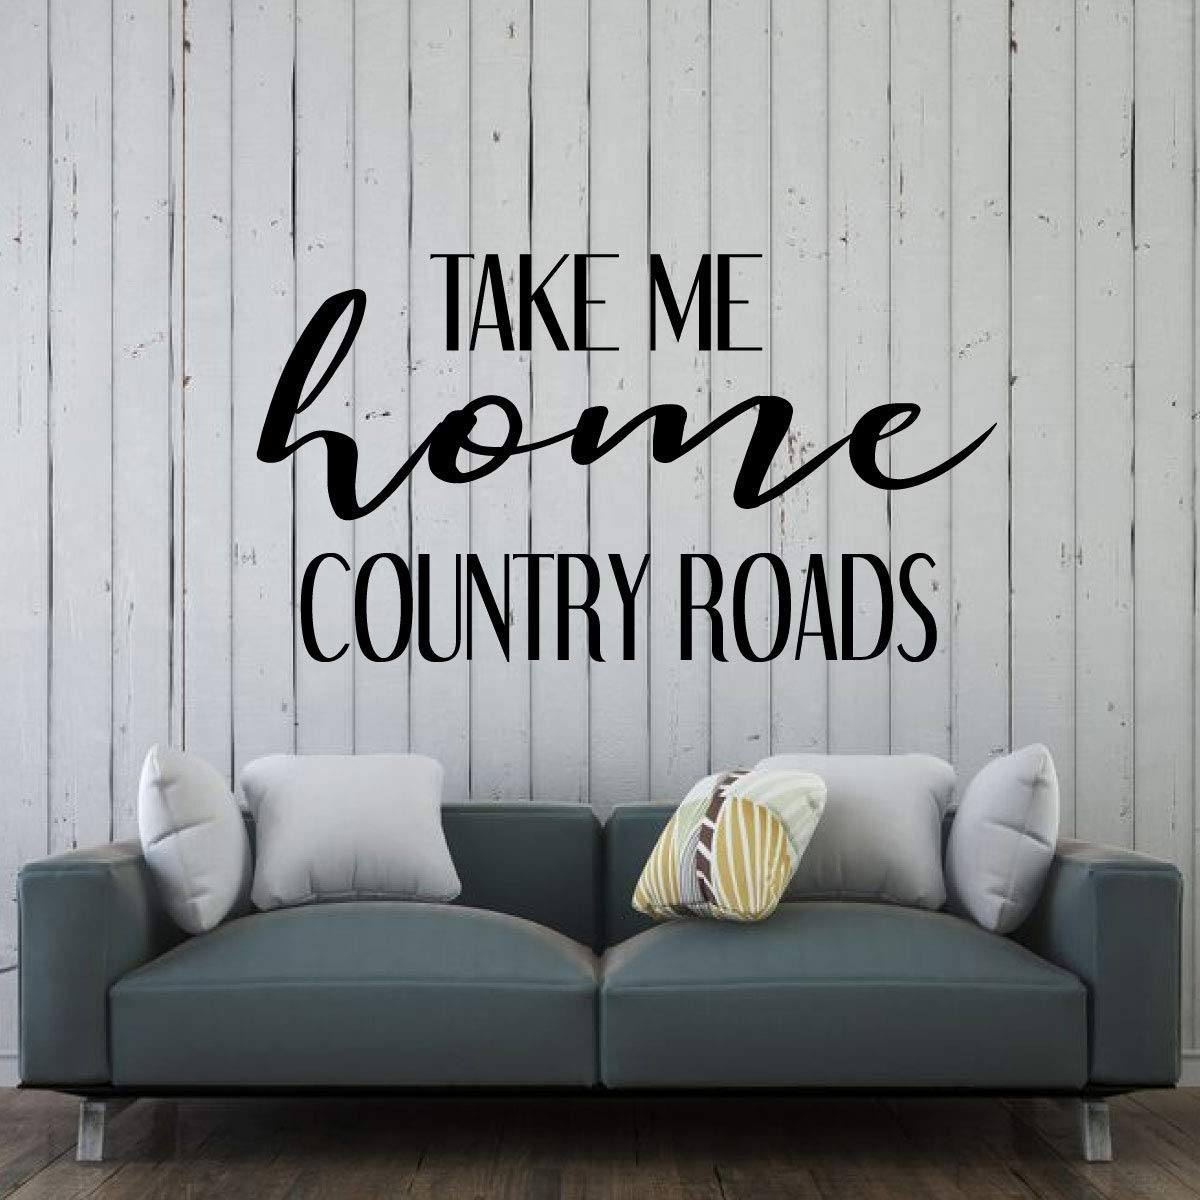 Country Roads Decor | 'Take Me Home' Lyrics Vinyl Wall Art for Living Room, Bedroom or Home Decor | Black, White, Pink, Red, Purple, Gold, Other Colors | Small and Large Sizes